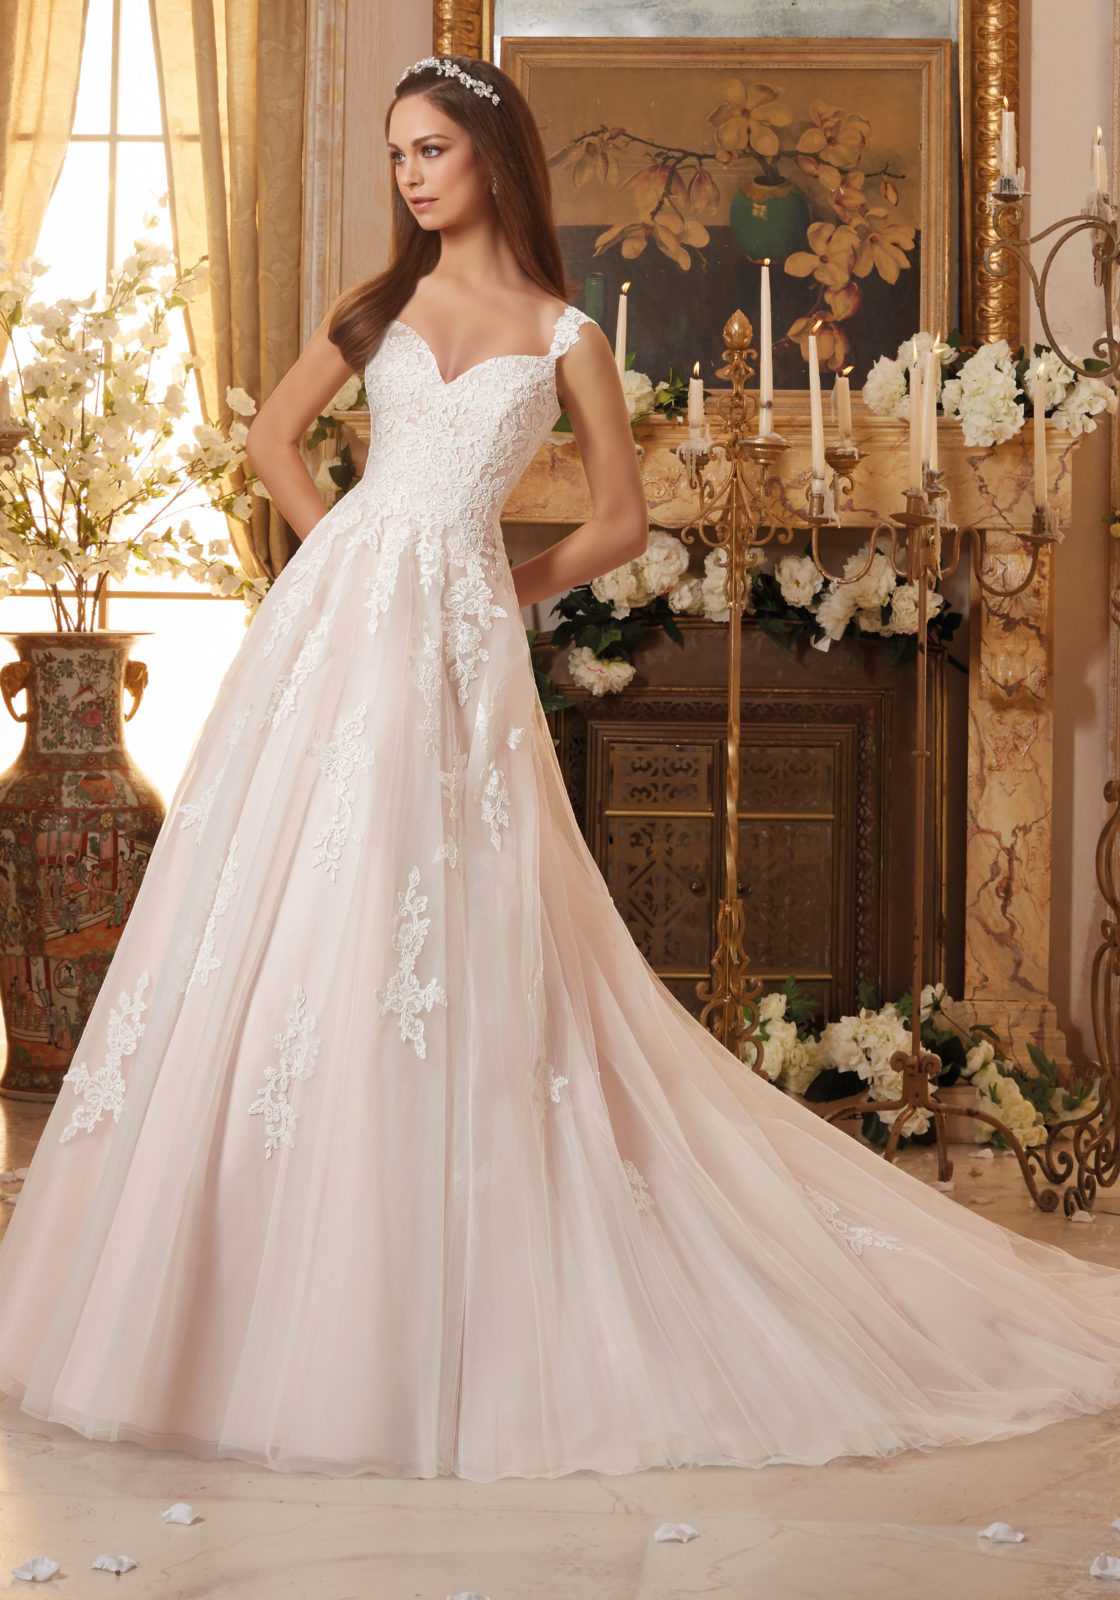 #5468 - Concepcion Bridal & Quinceañera Boutique